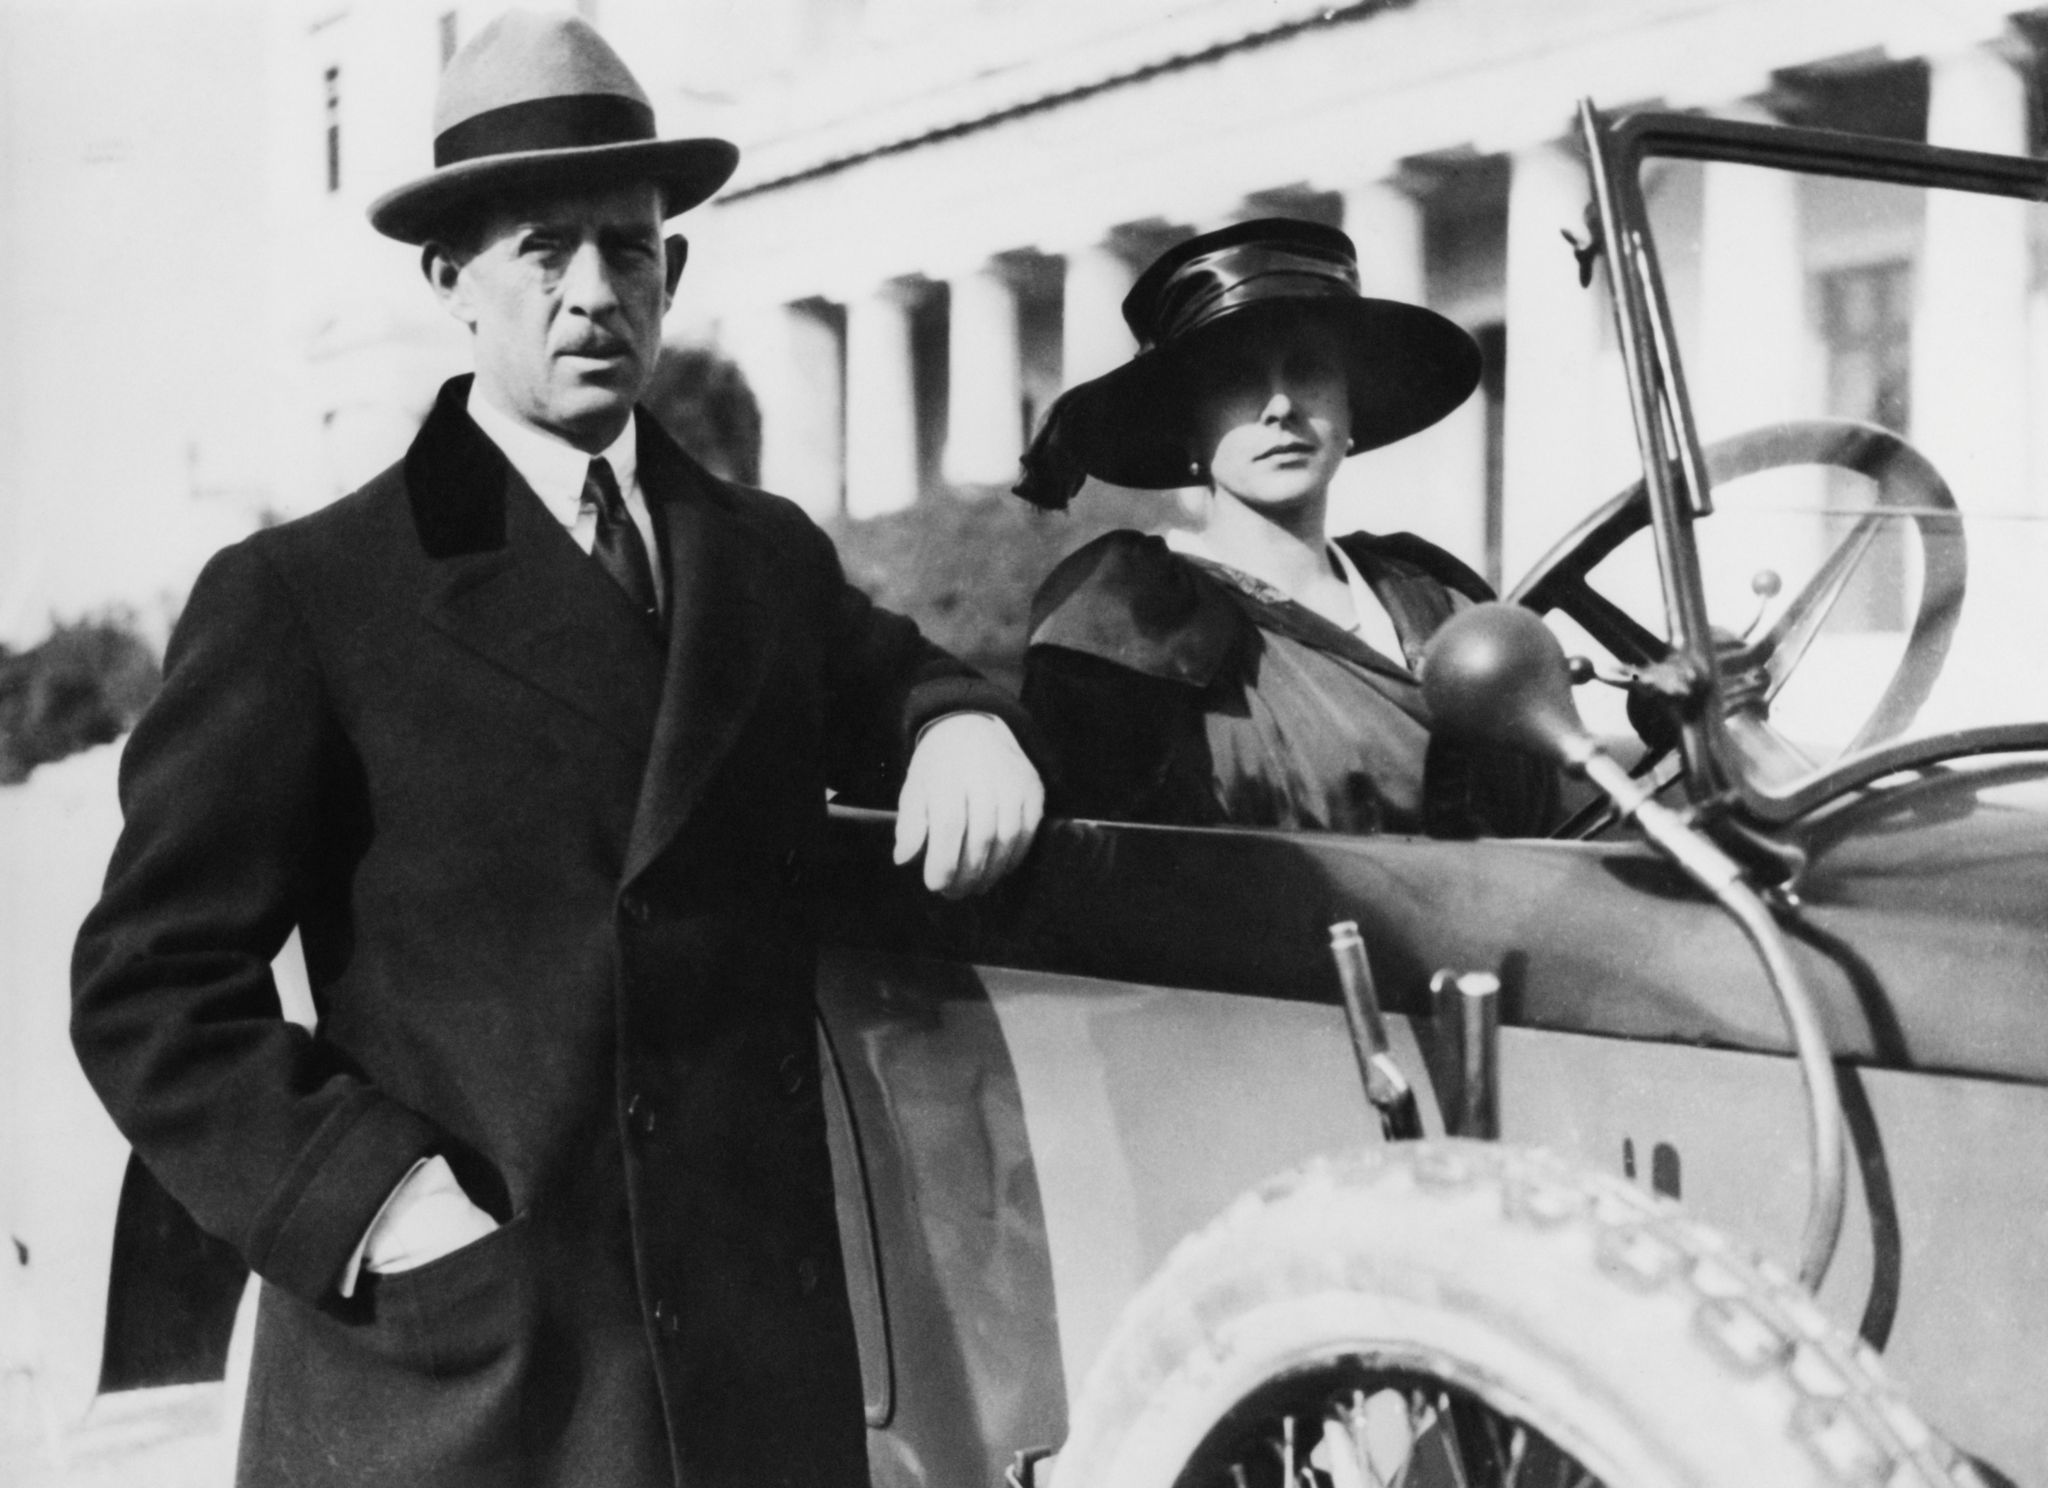 Prince Andrew of Greece and Denmark with Princess Alice of Battenberg in 1921 in Athens, Greece | Source: Getty Image